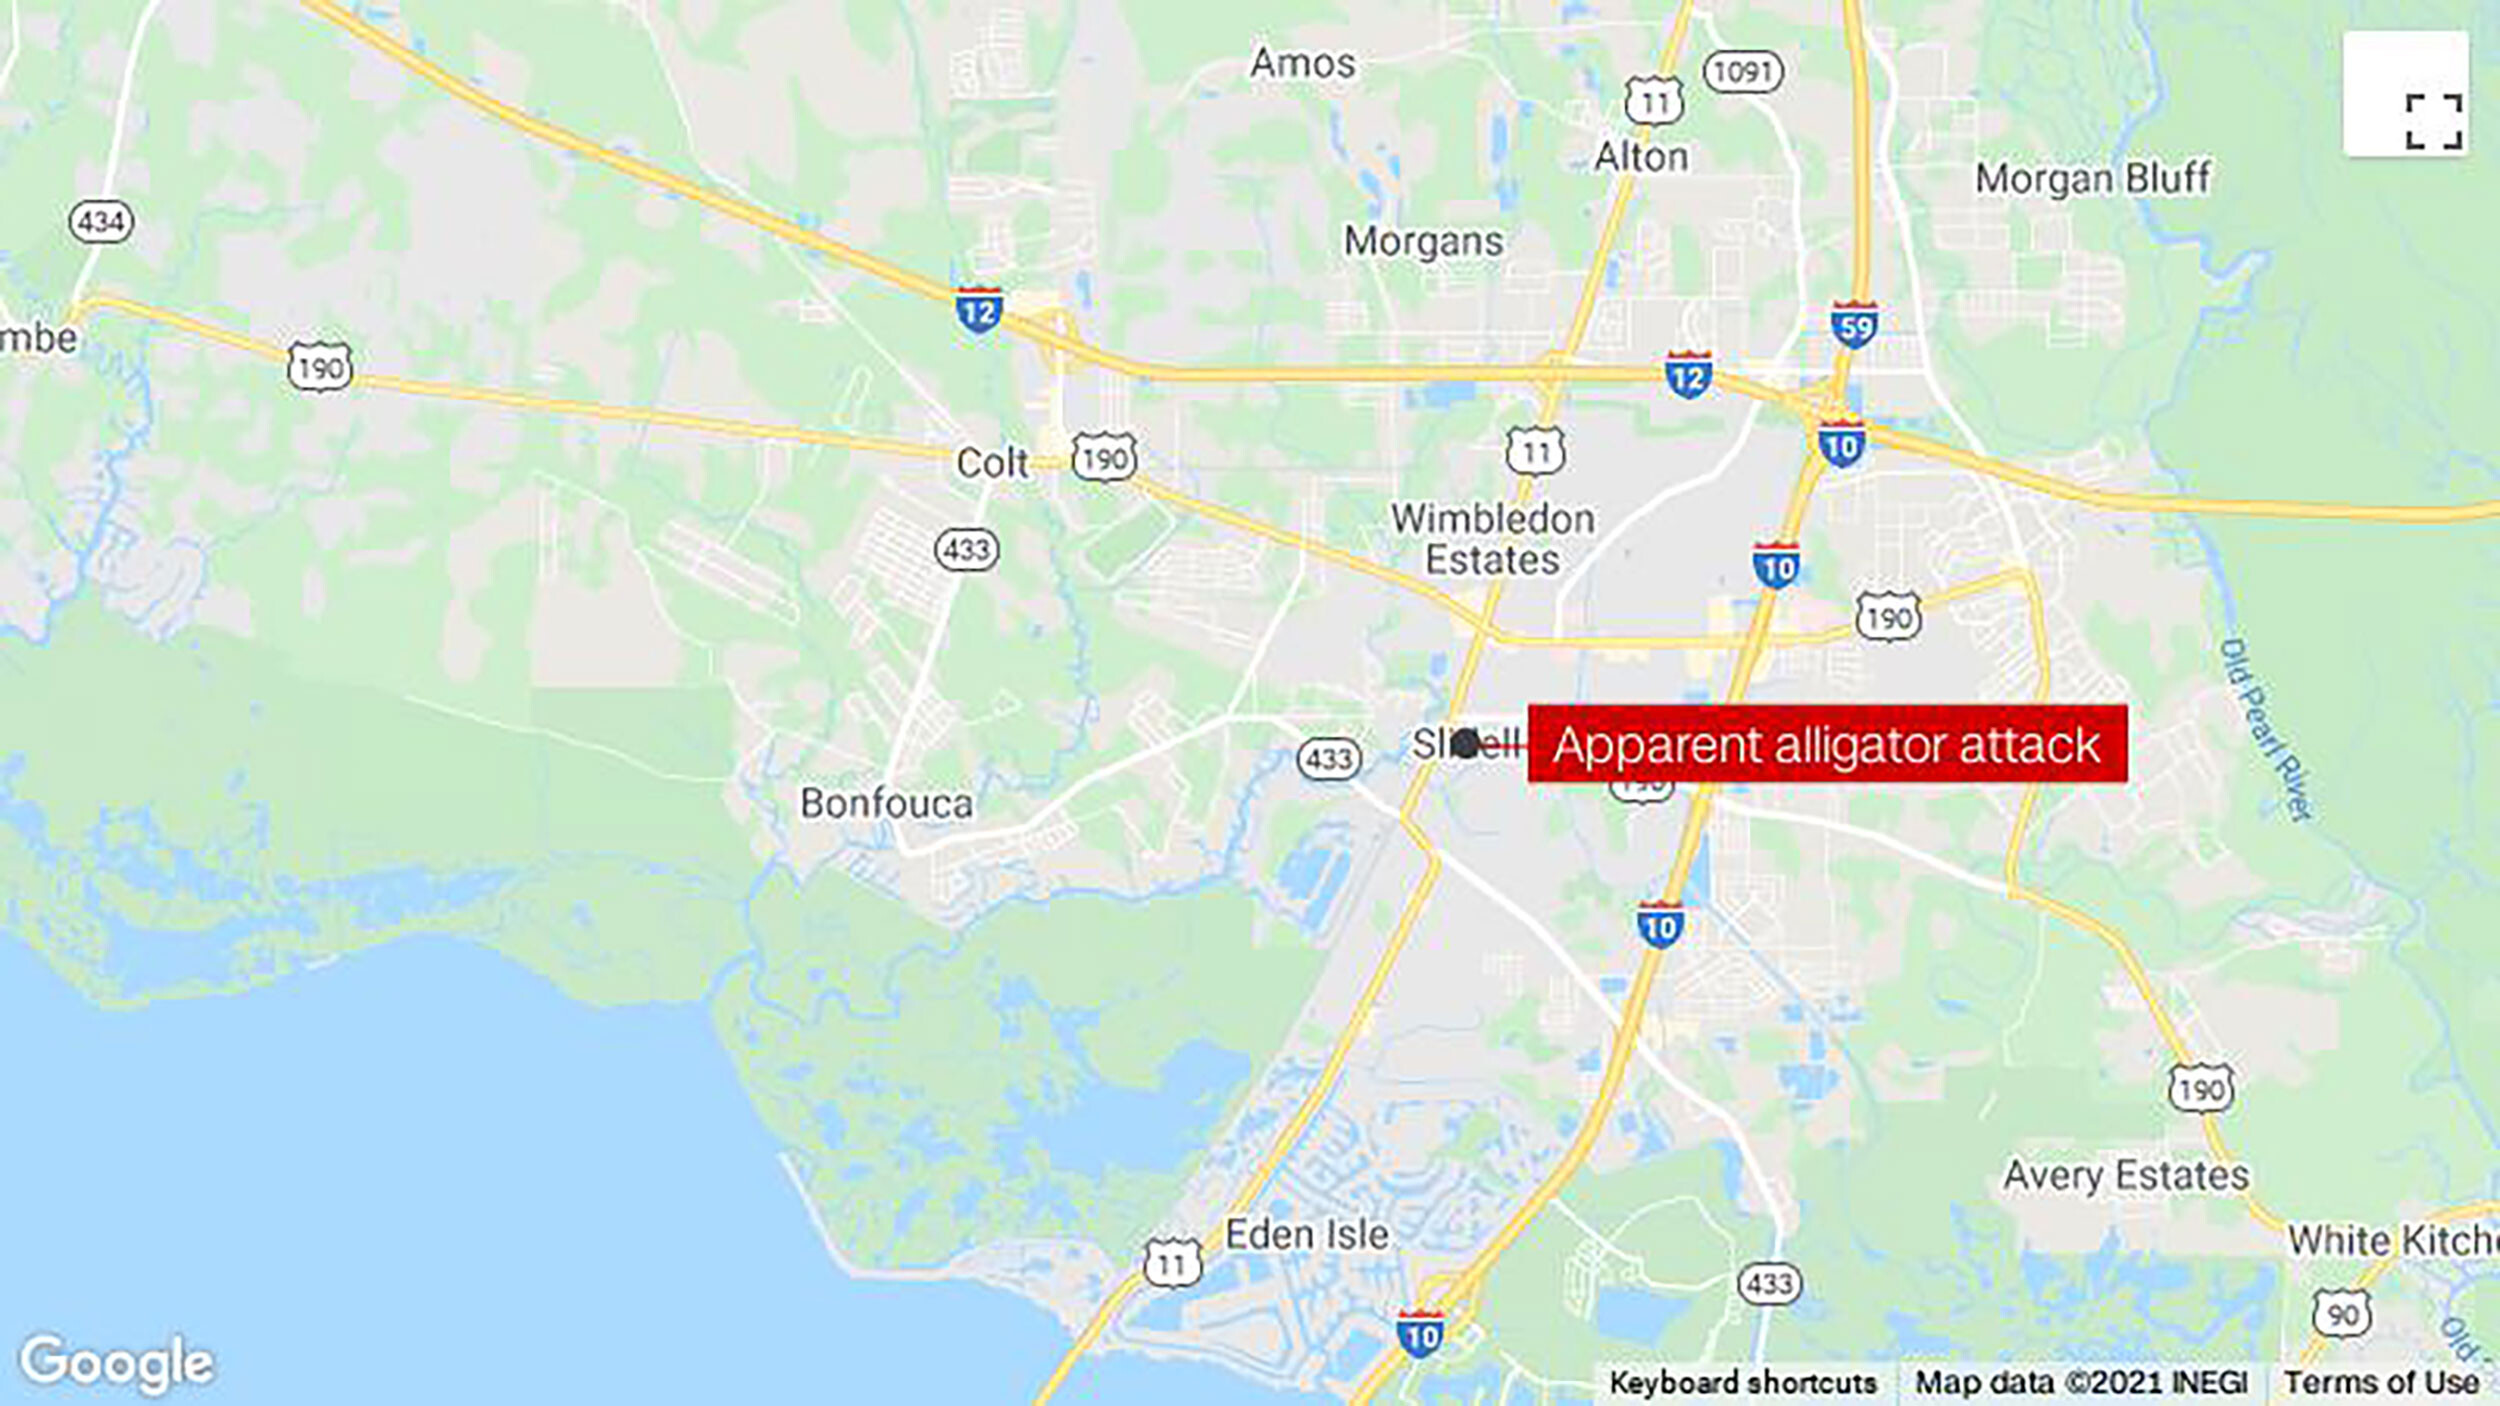 A Louisiana man is presumed dead after an alligator attacked him while he walked in floodwaters